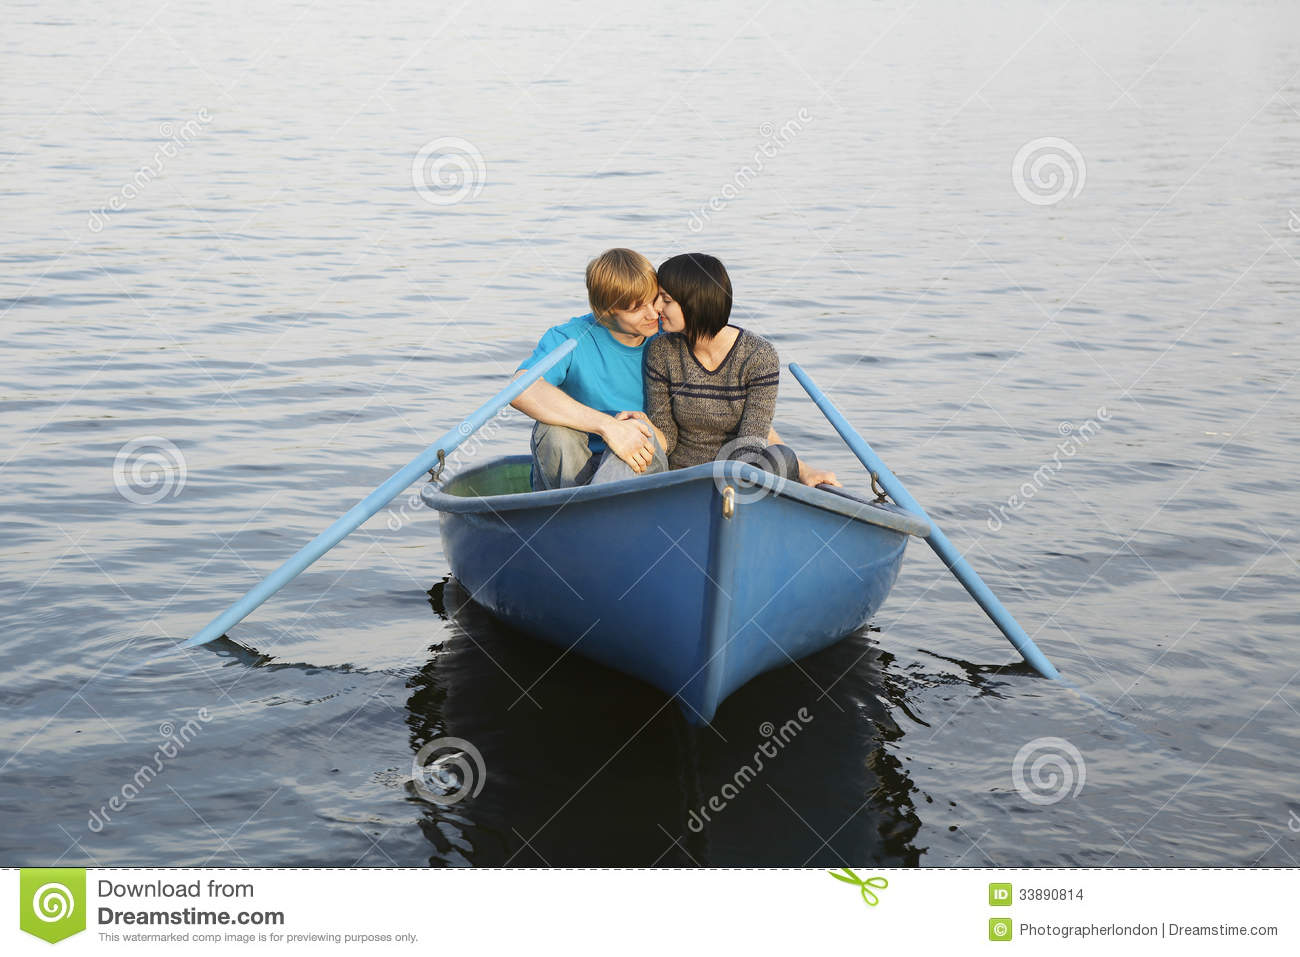 Couple In Rowboat At Lake Stock Images - Image: 33890814